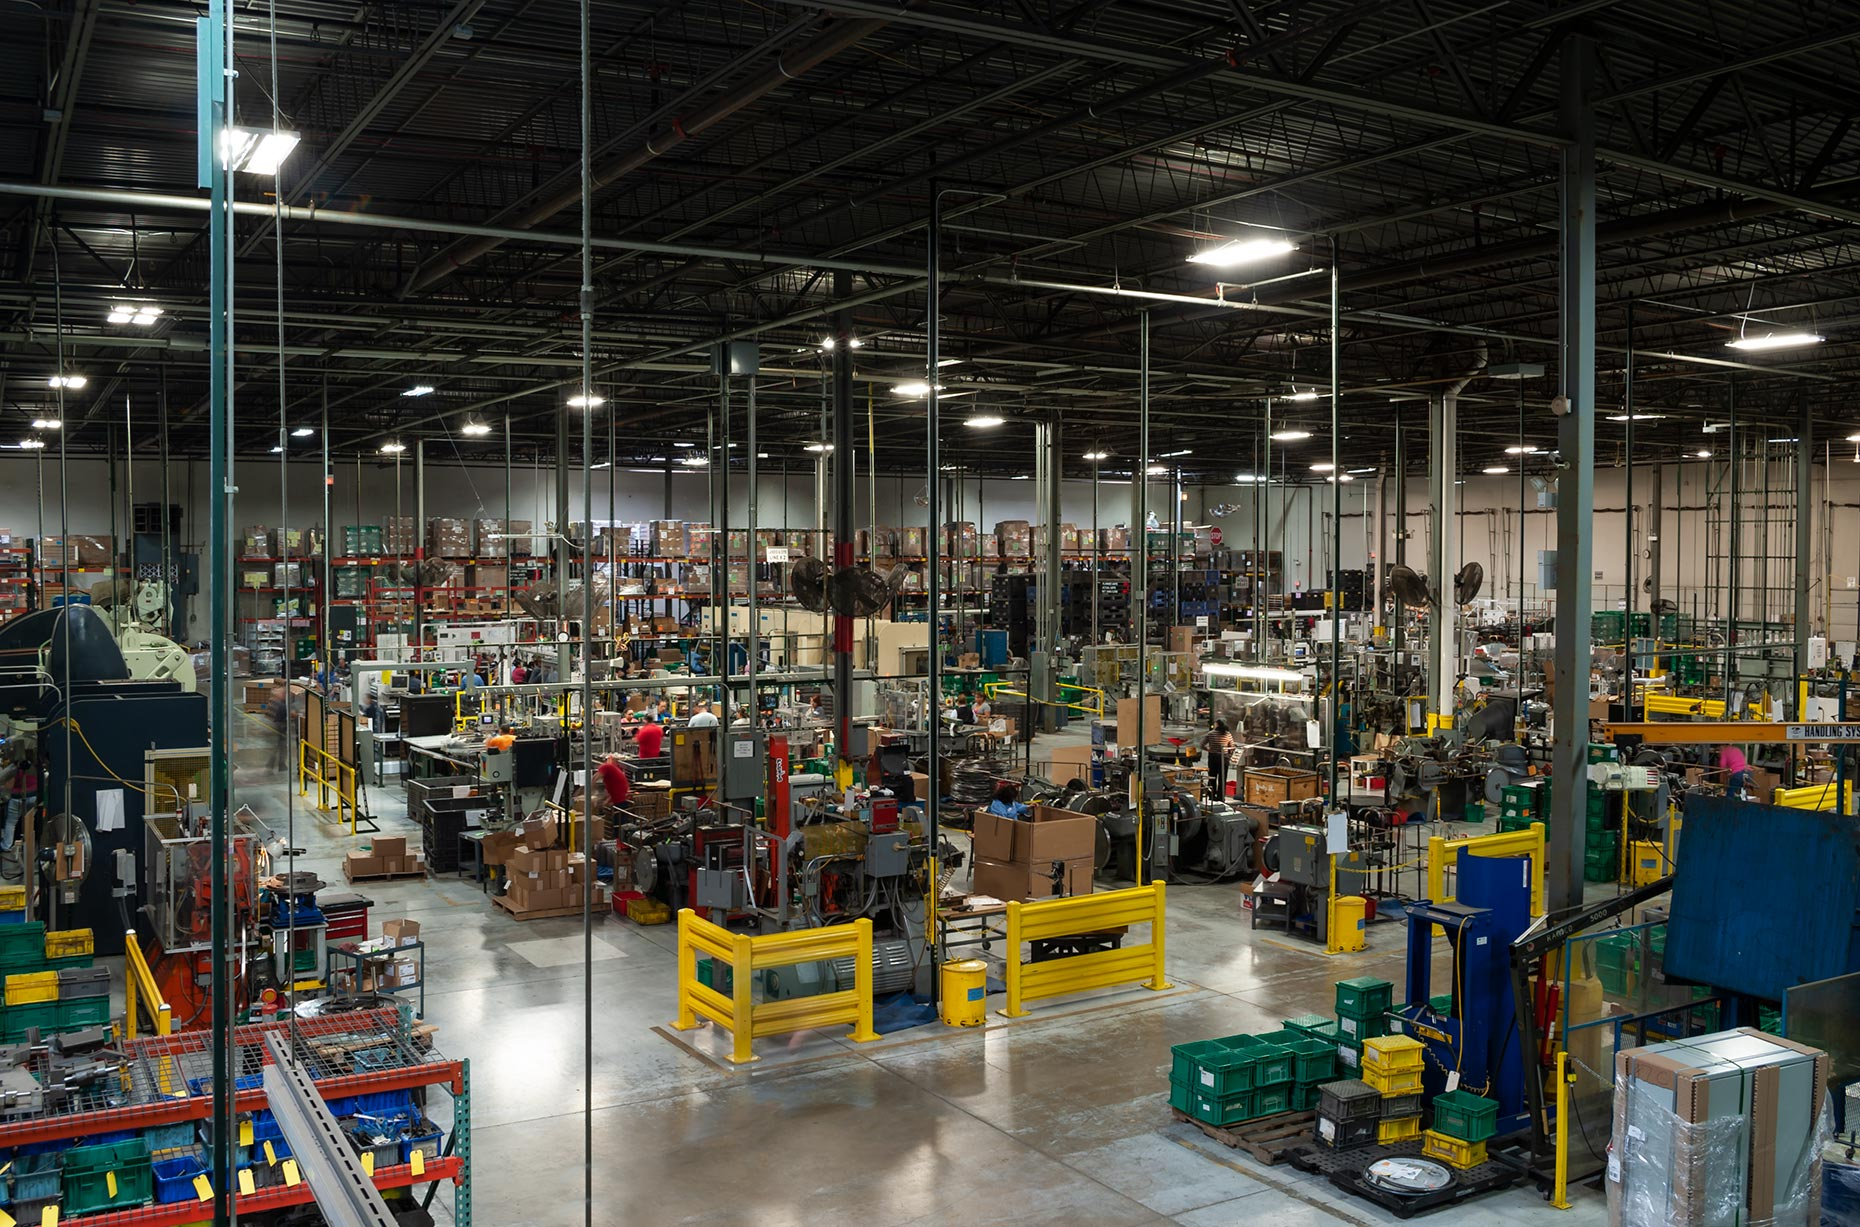 Panoramic view of manufacturing plant warehouse filled with machinery and packaging